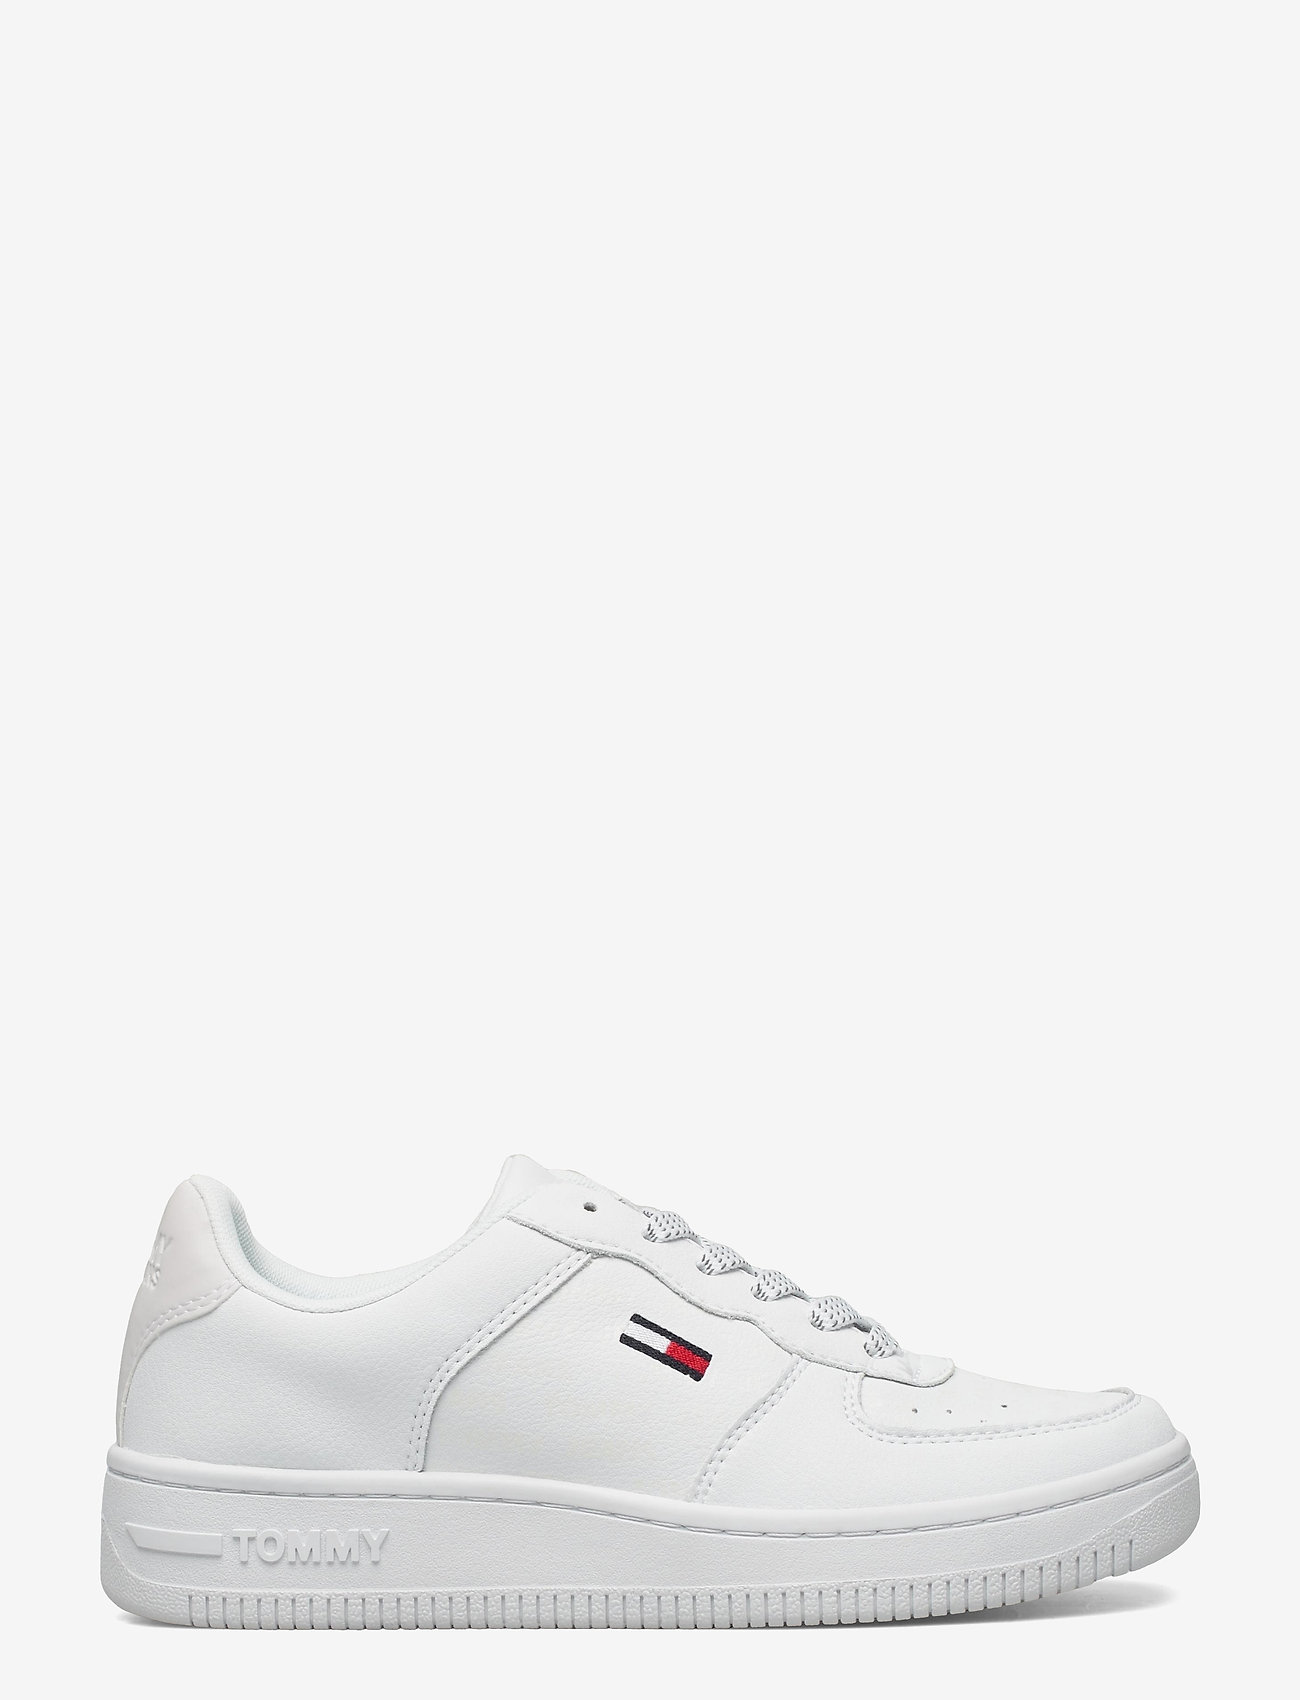 Tommy Hilfiger - WMNS REFLECTIVE BASKET - low top sneakers - white - 1